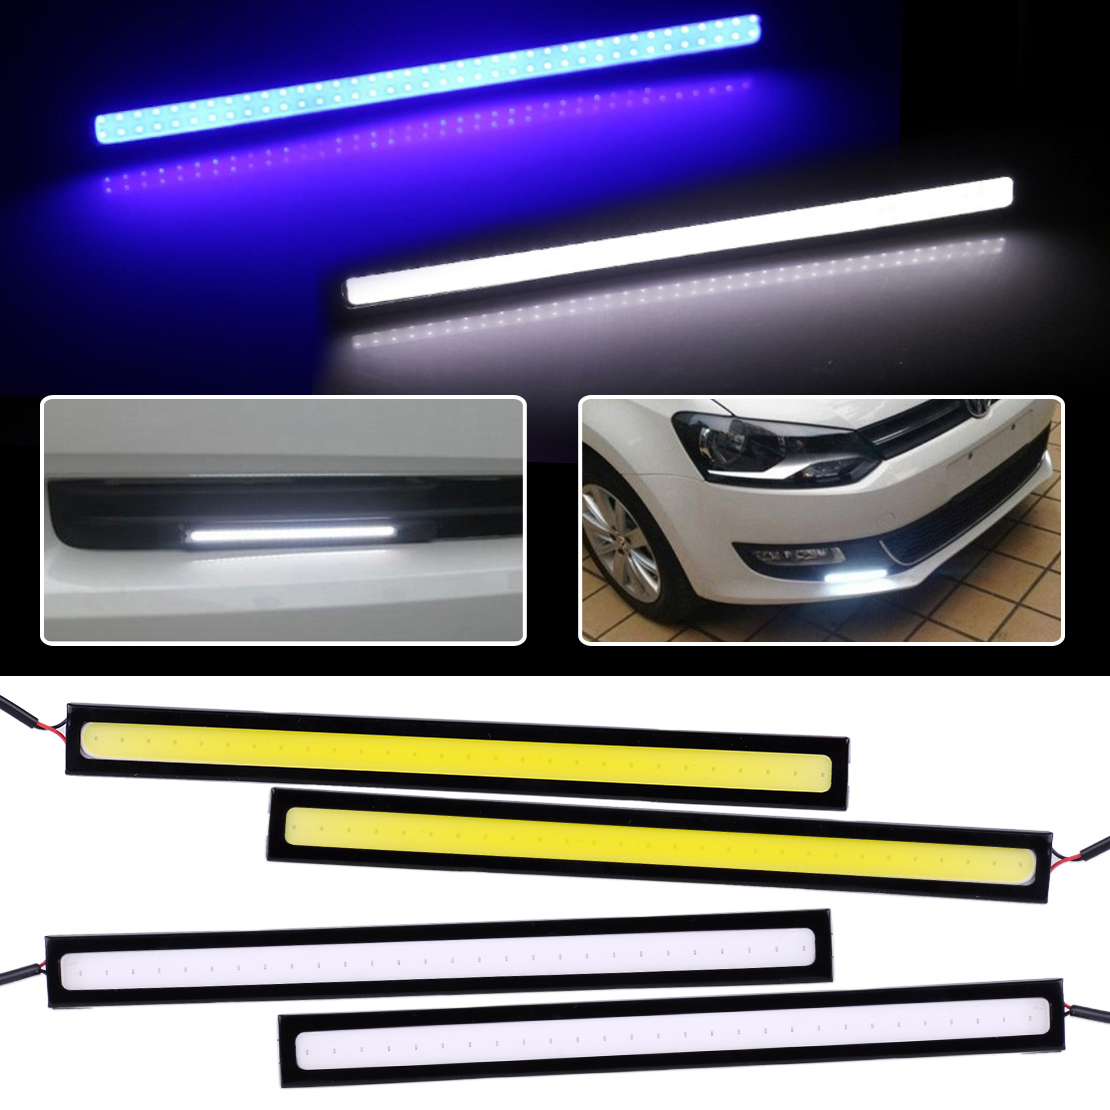 beler New 2pcs 12V Super Bright LED Waterproof Daytime Running Lights Auto Car Styling Decoration DRL COB Fog Driving Lamp